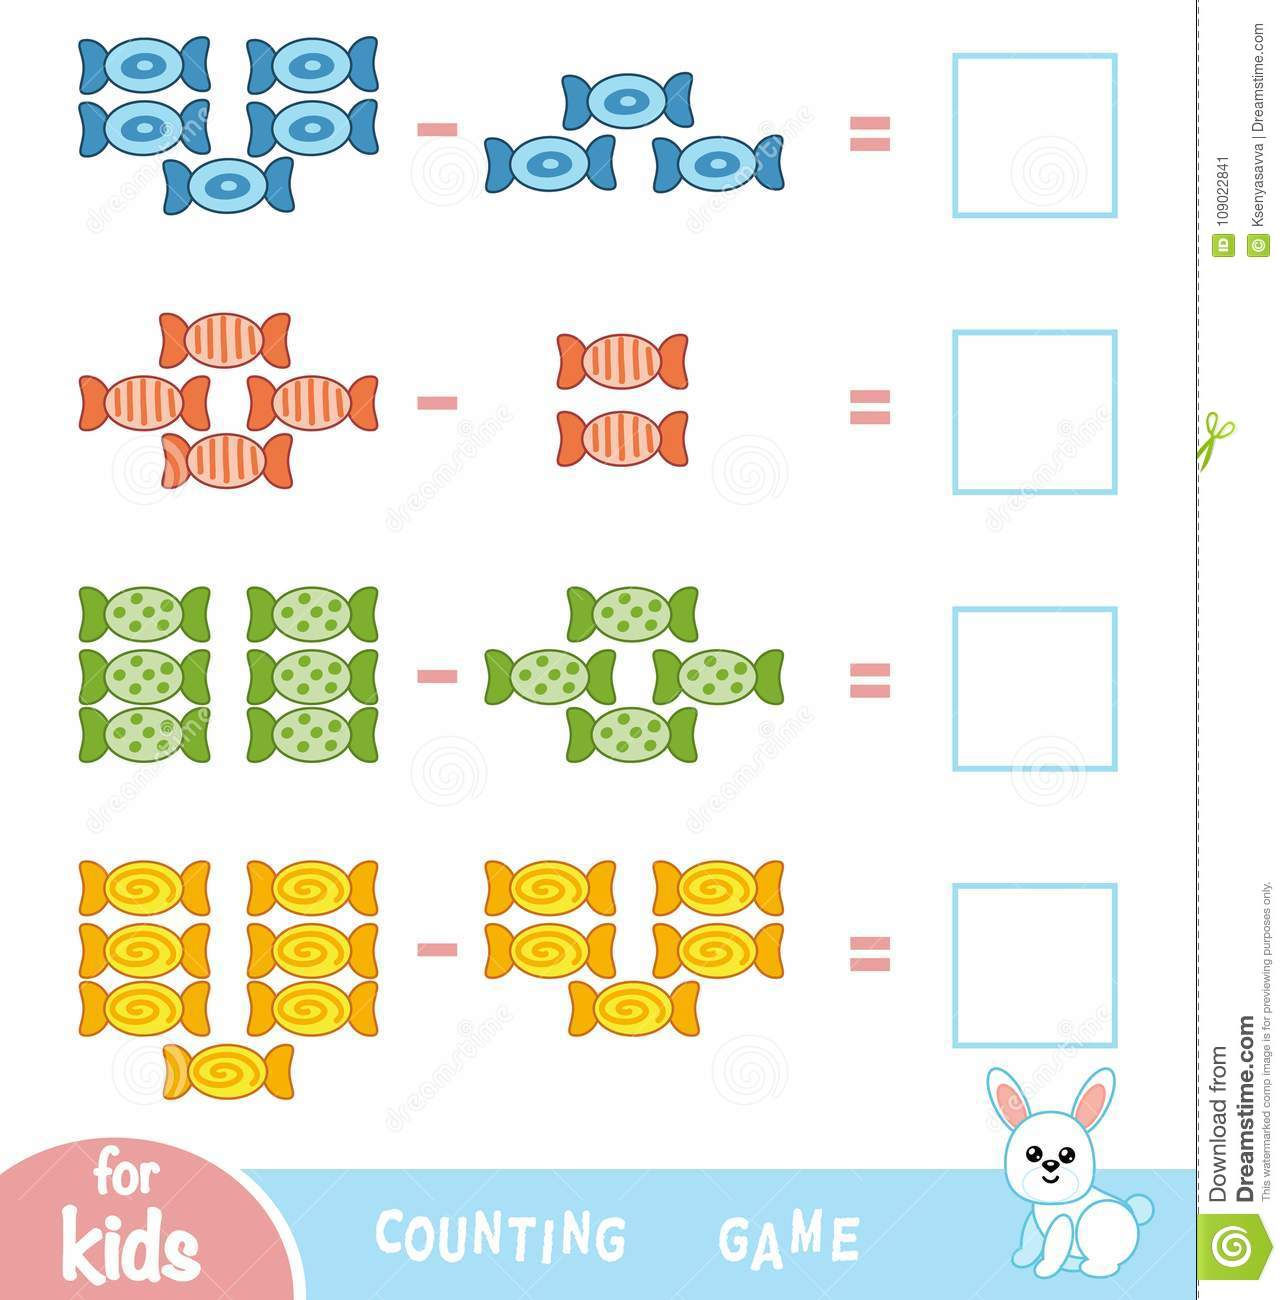 Counting Game For Preschool Children Count The Number Of